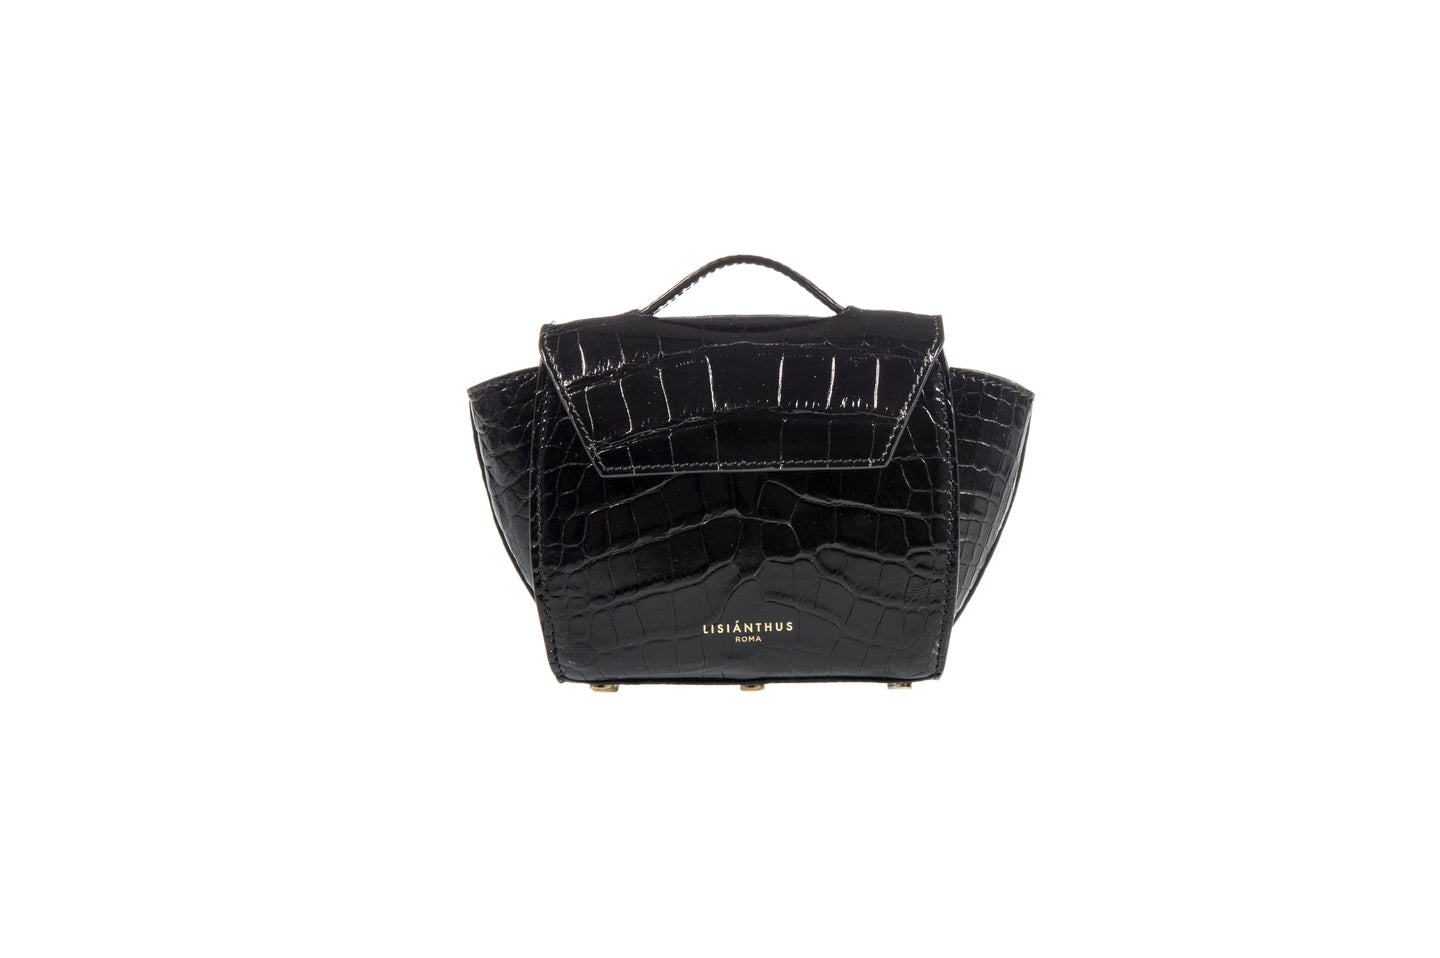 Rorò Micro in Black Alligator - Lisiánthus Roma